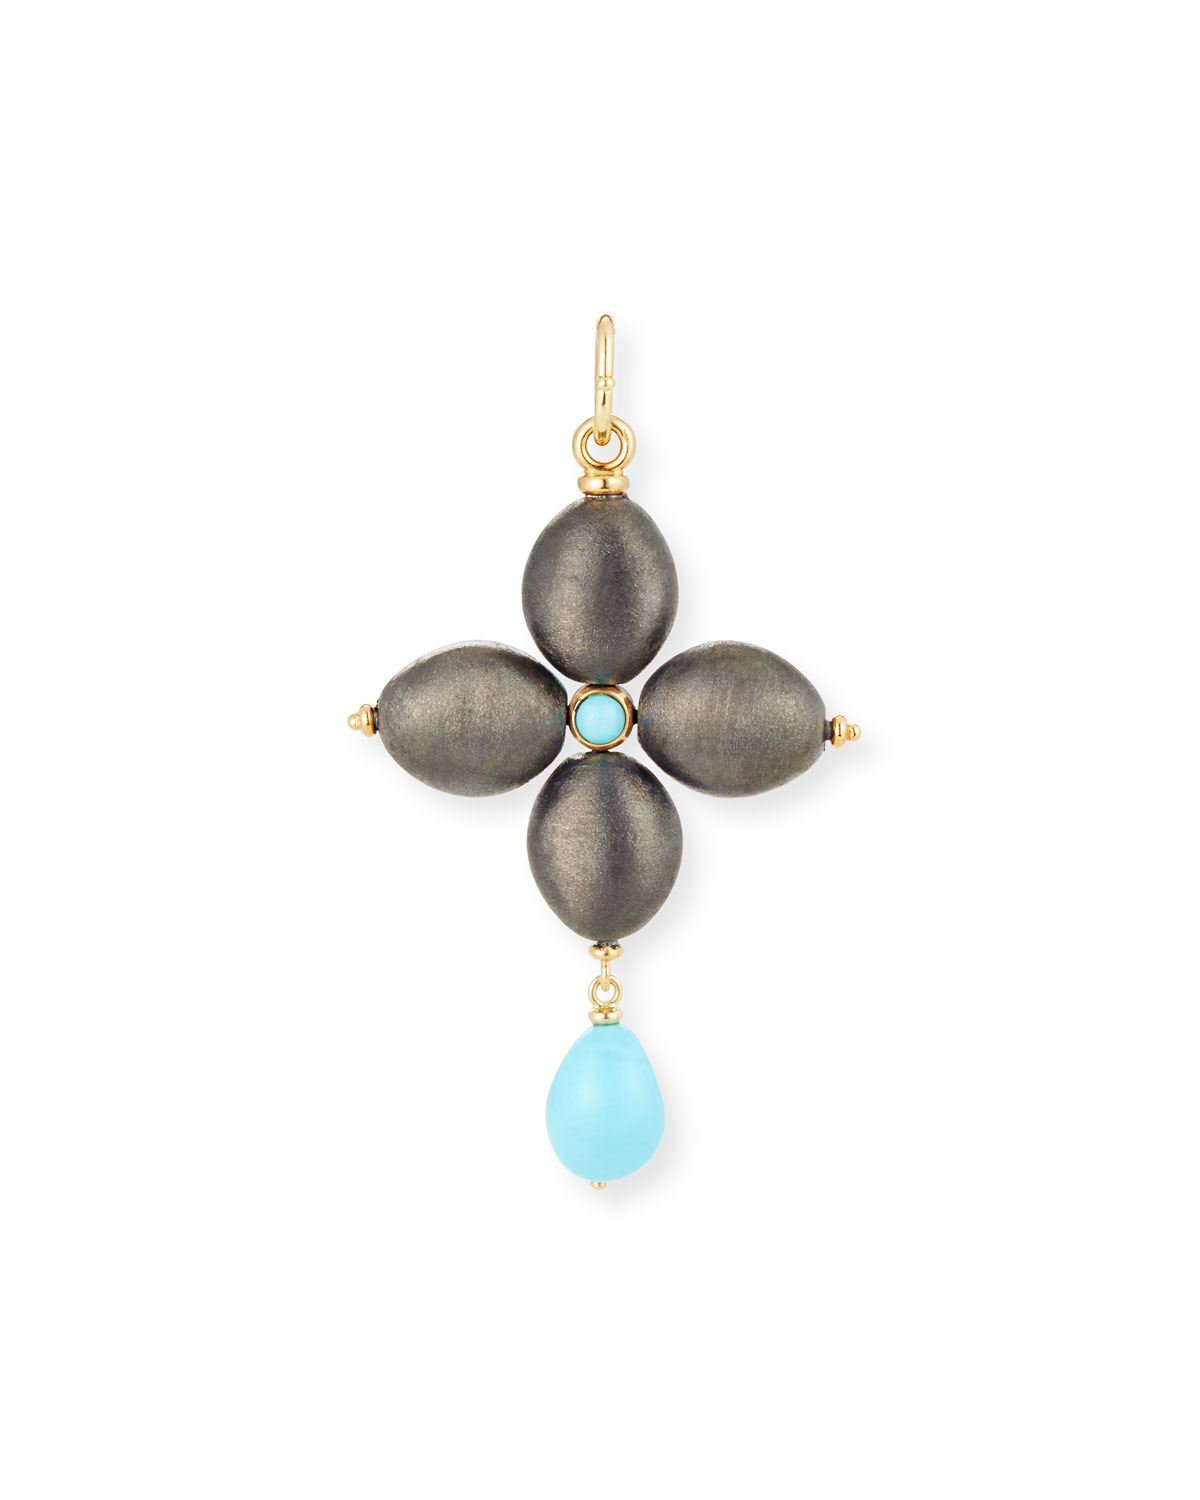 BLACK SILVER CROSS CHARM WITH TURQUOISE